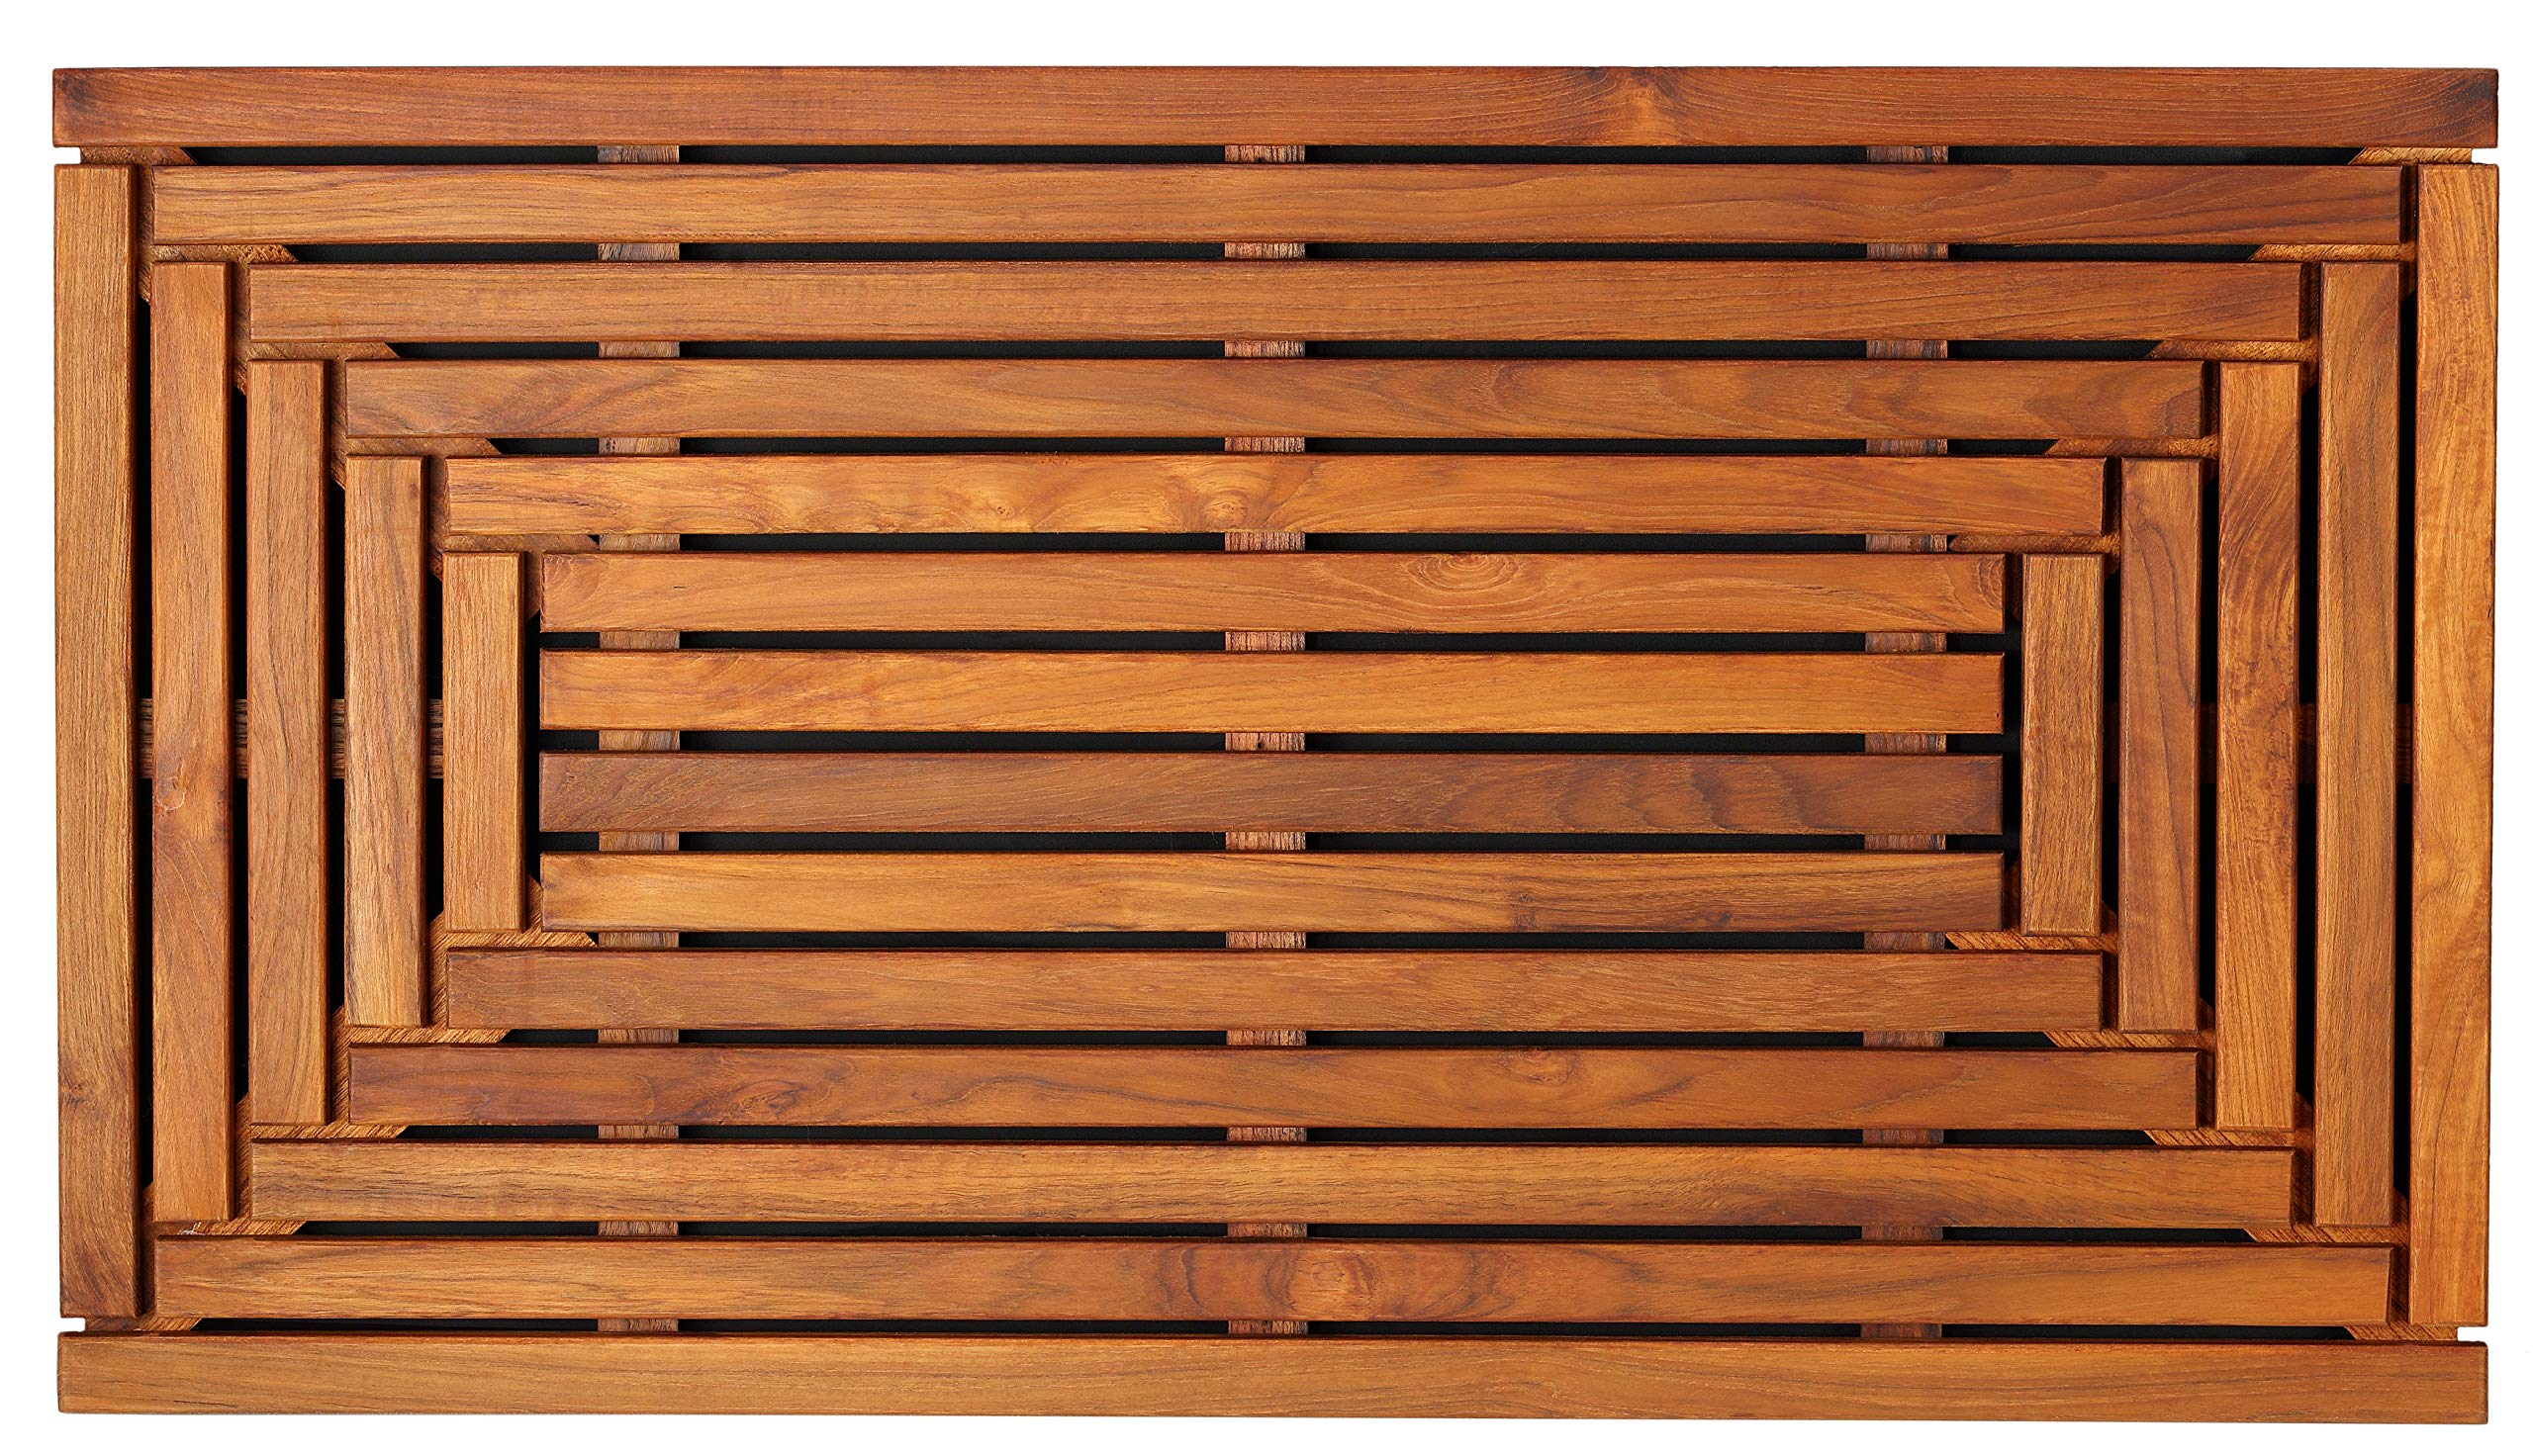 Bare Decor Giza Shower, Spa, Door Mat in Solid Teak Wood and Oiled Finish 35.5'' x 19.75'' by Bare Decor